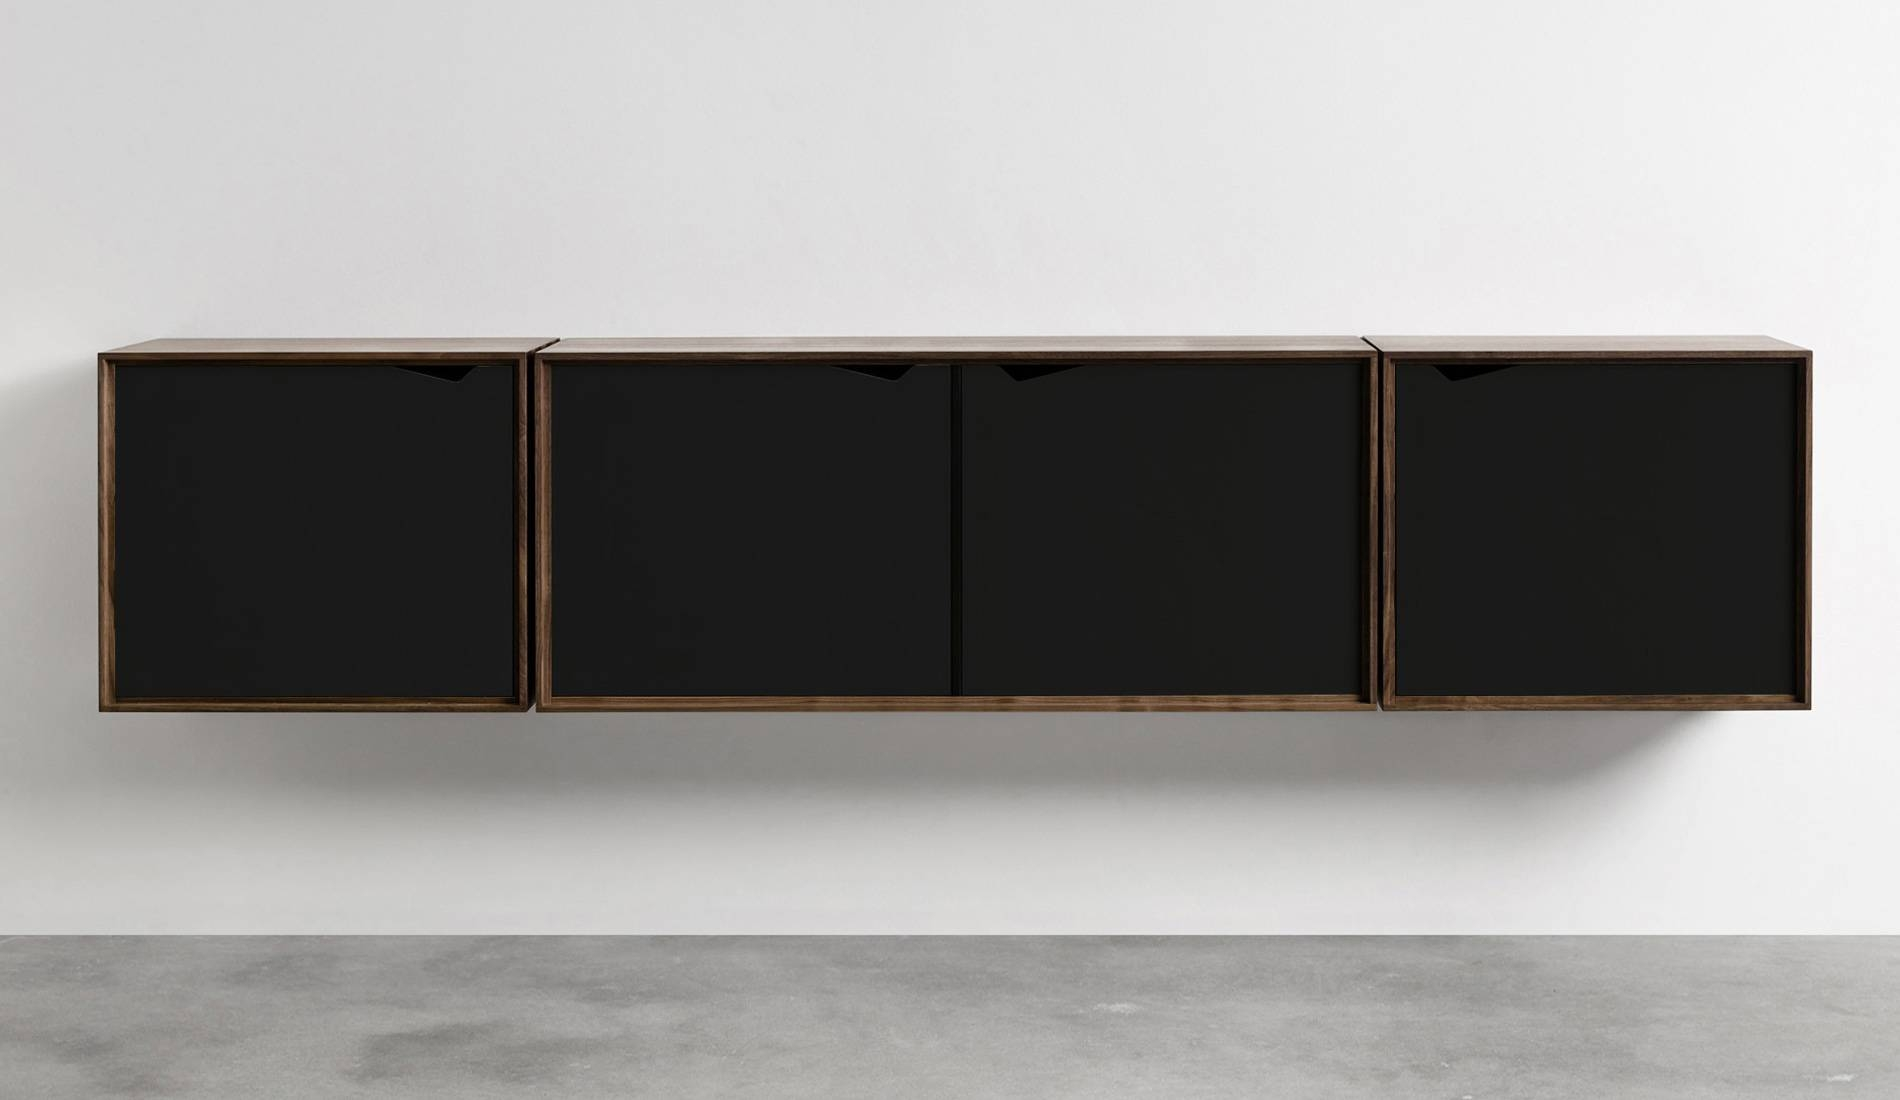 Andersen S2 Walnut / Black Sideboard | Dopo Domani In Black And Walnut Sideboard (#2 of 20)